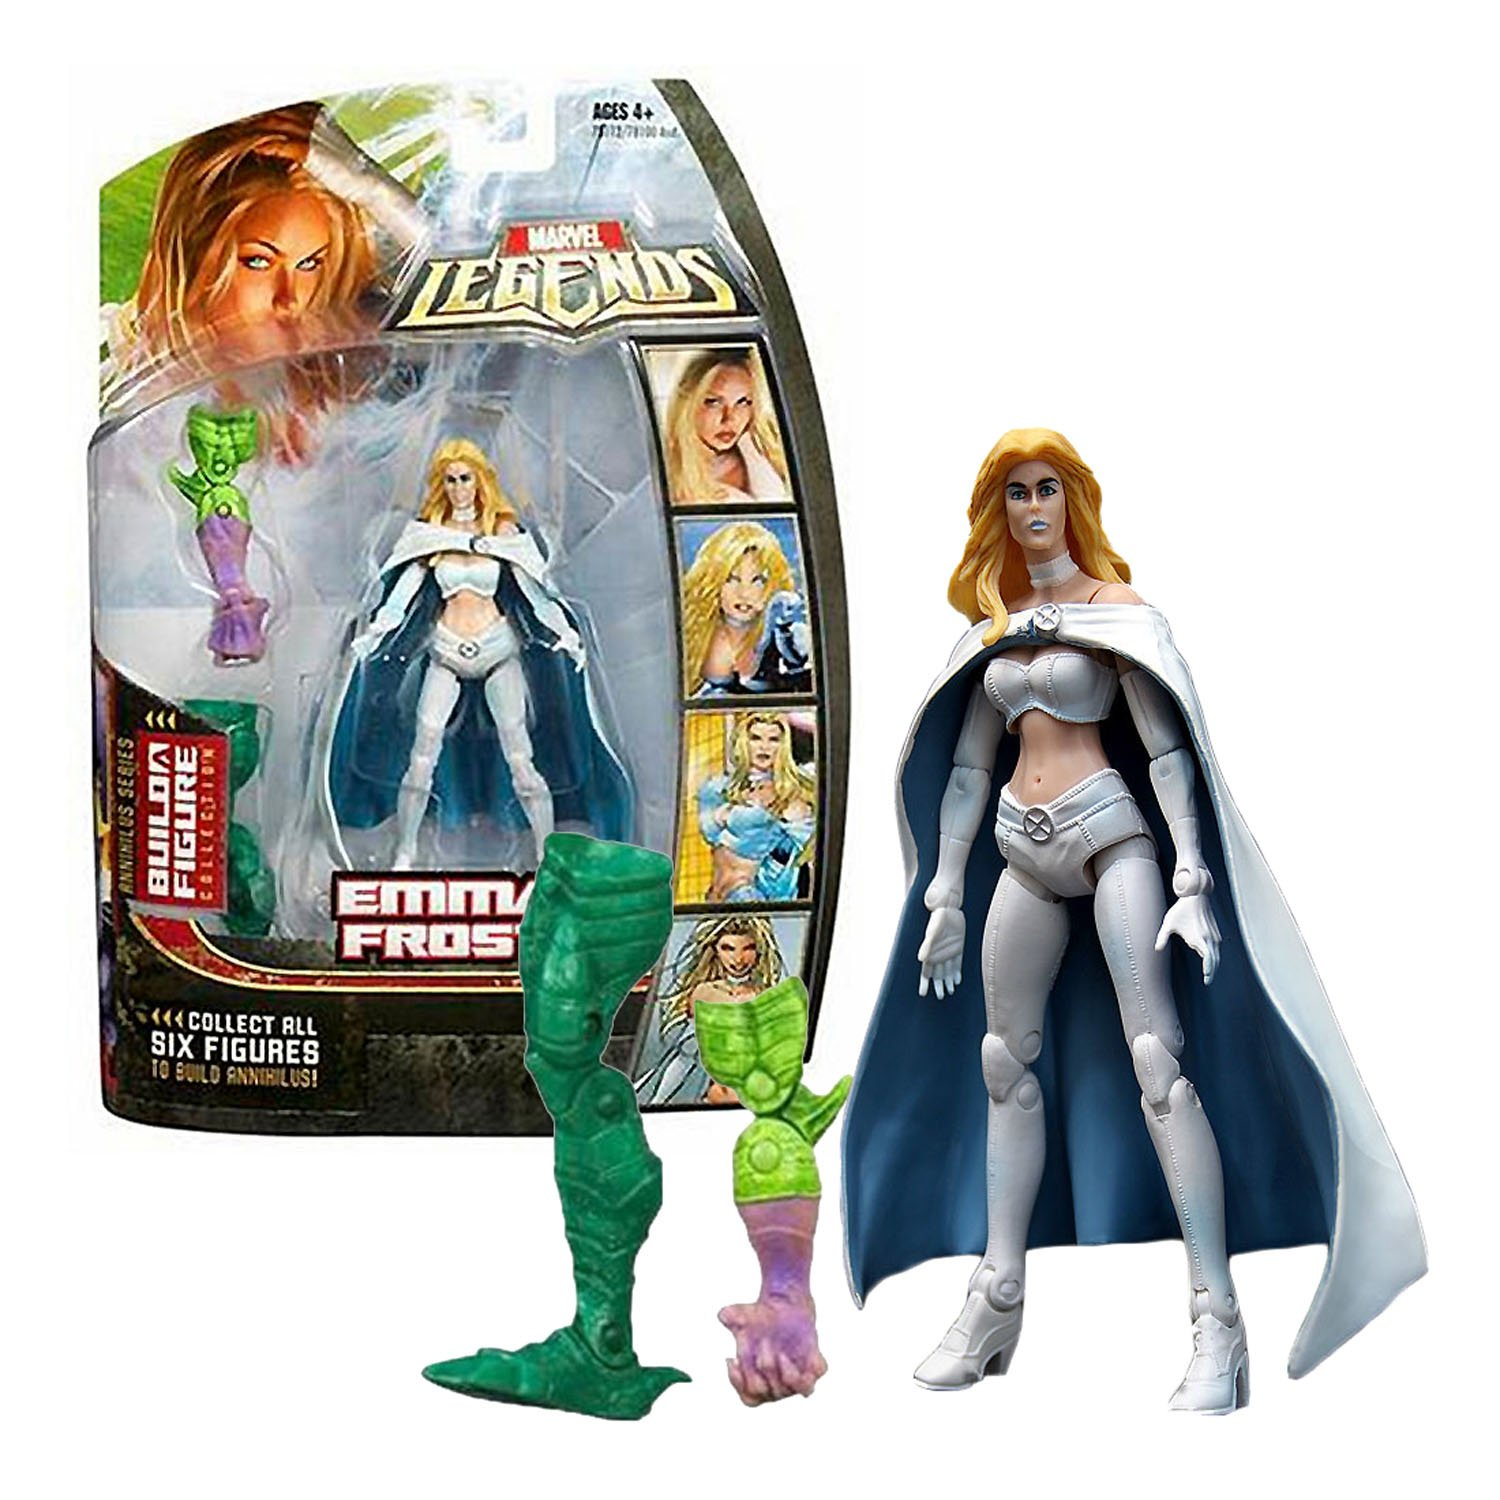 Hasbro Year 2006 Marvel Legends Build A Figure Annihilus Series 6 Inch Tall Action Figure - EMMA FROST with Removable B00UF9SMFQ